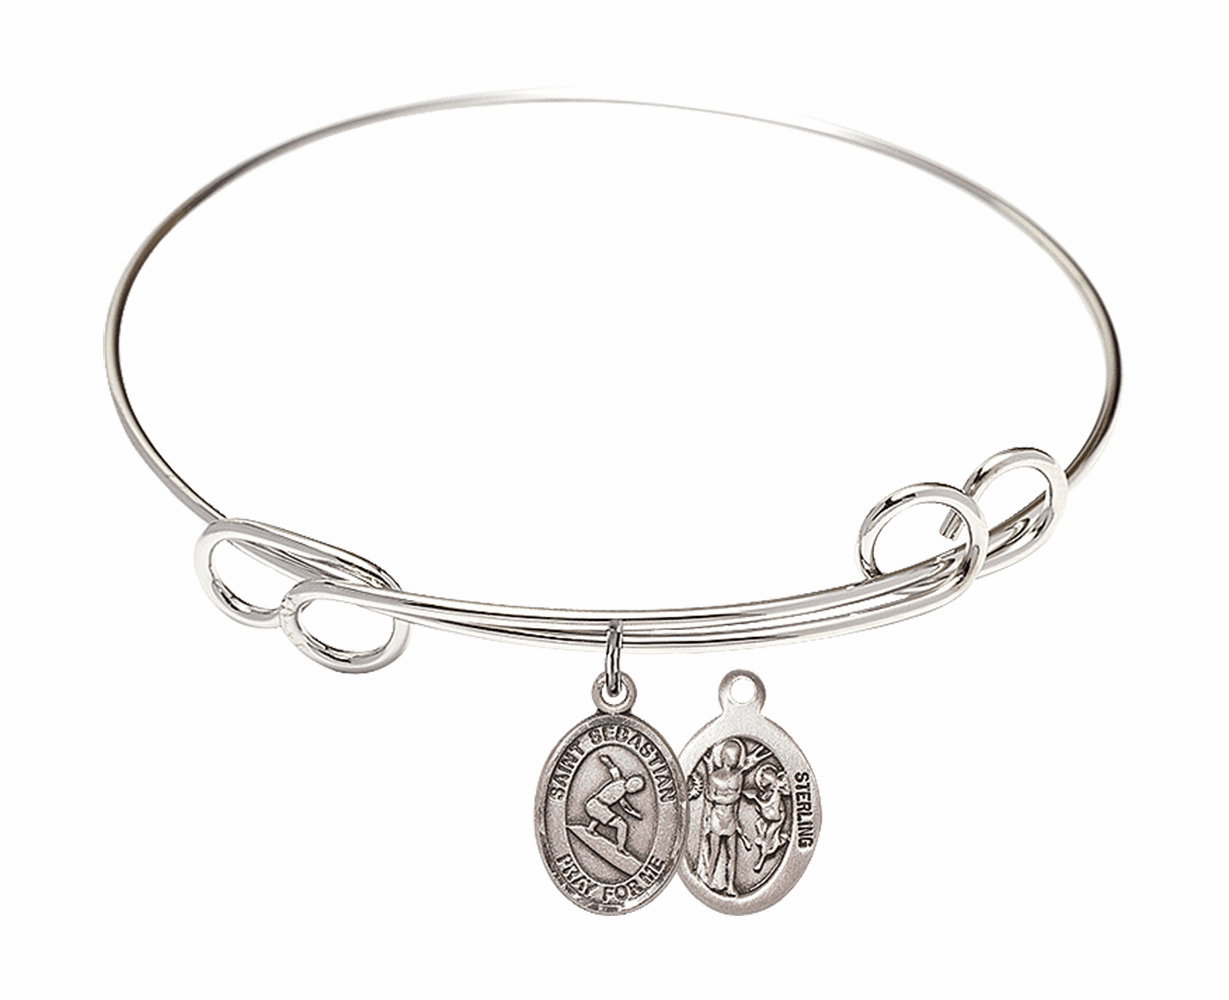 Round Loop St Sebastian Surfing Bangle Charm Bracelet by Bliss